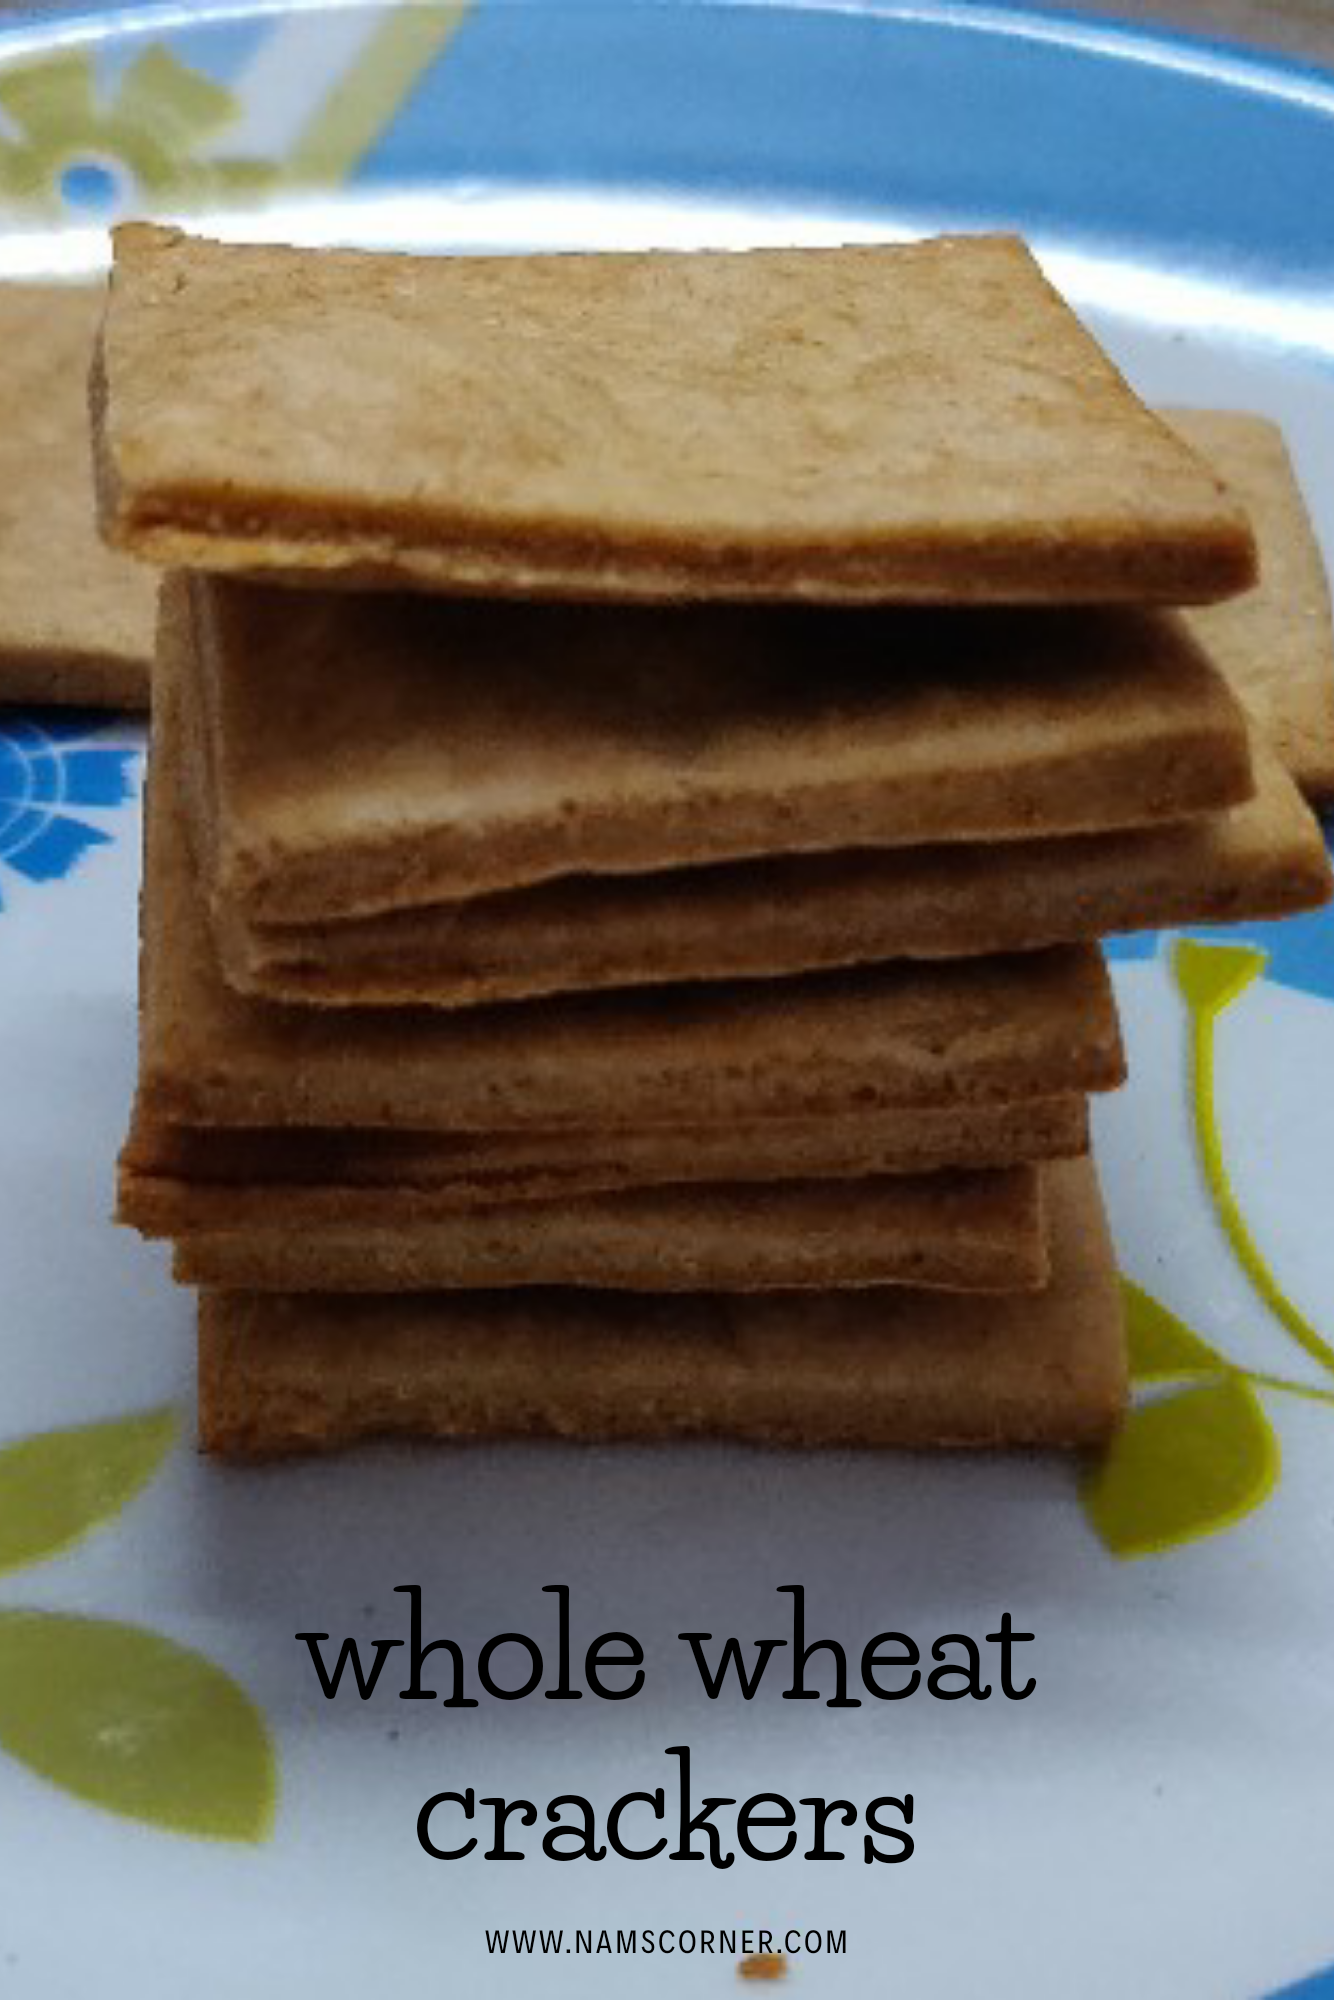 wheat_crackers - 67805505_459070054689770_6192290114282979328_n.png